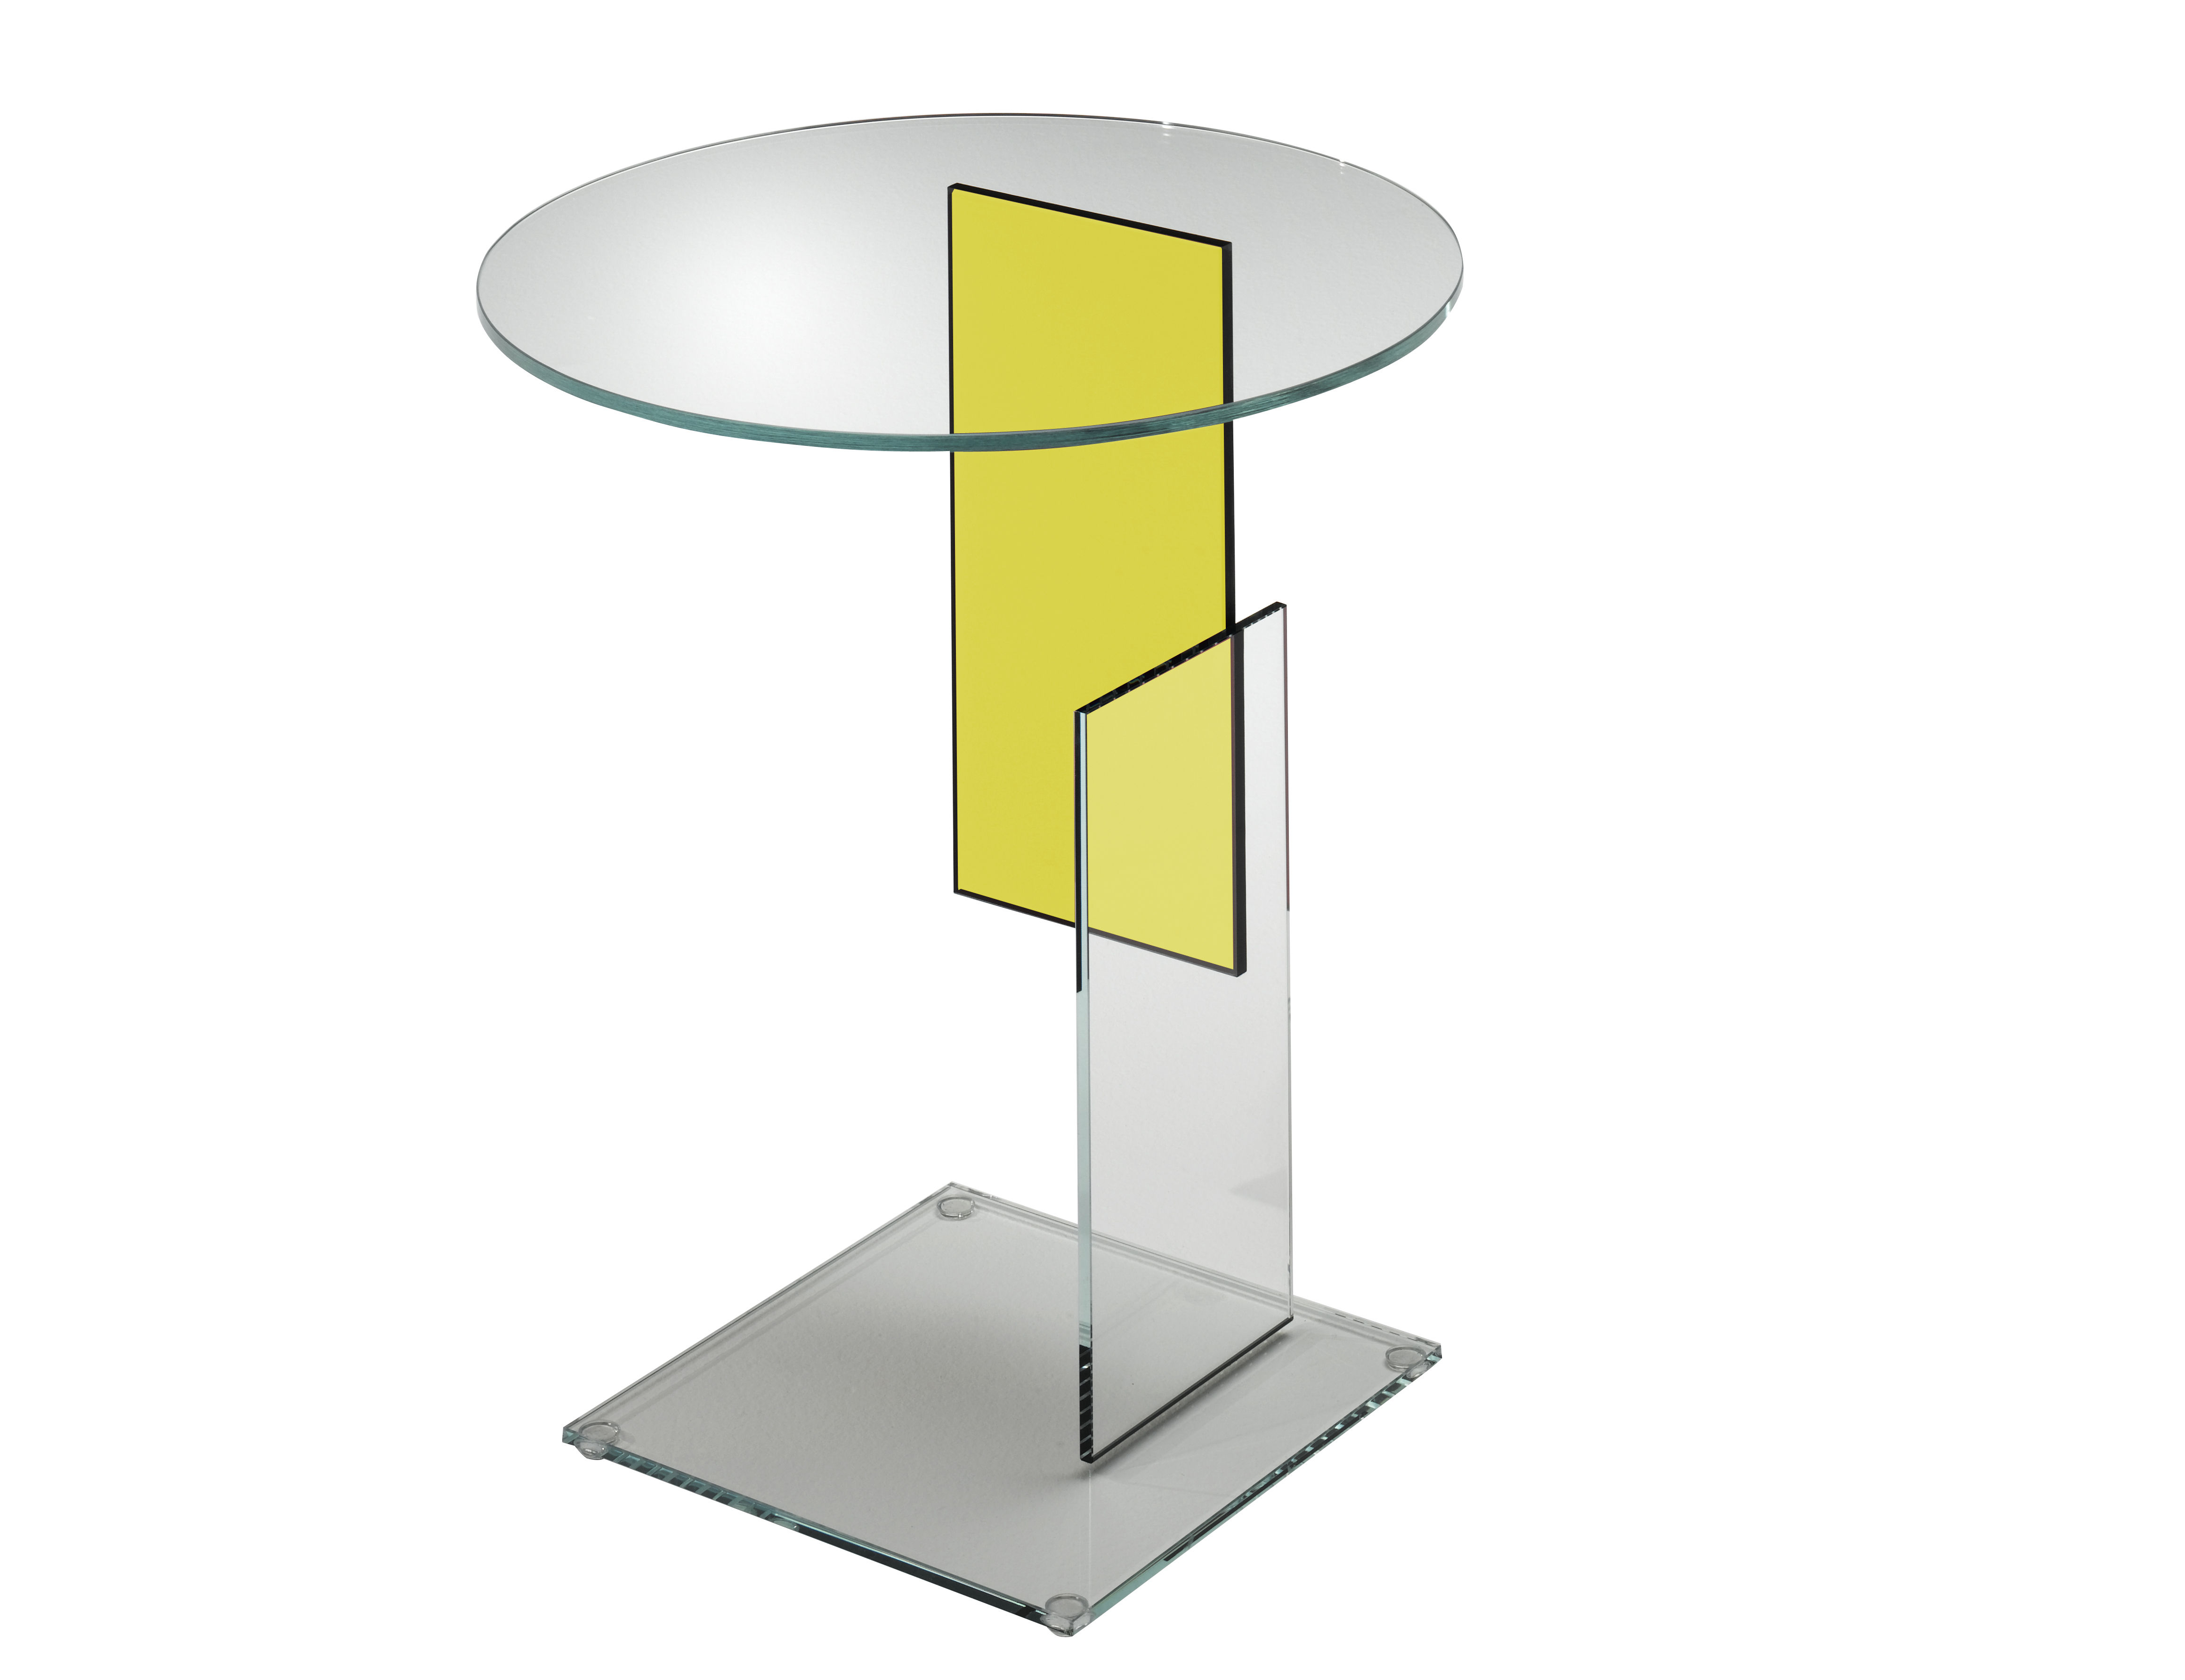 Mobilier - Tables basses - Table basse Don Gerrit - Glas Italia - Transparent / jaune - Verre